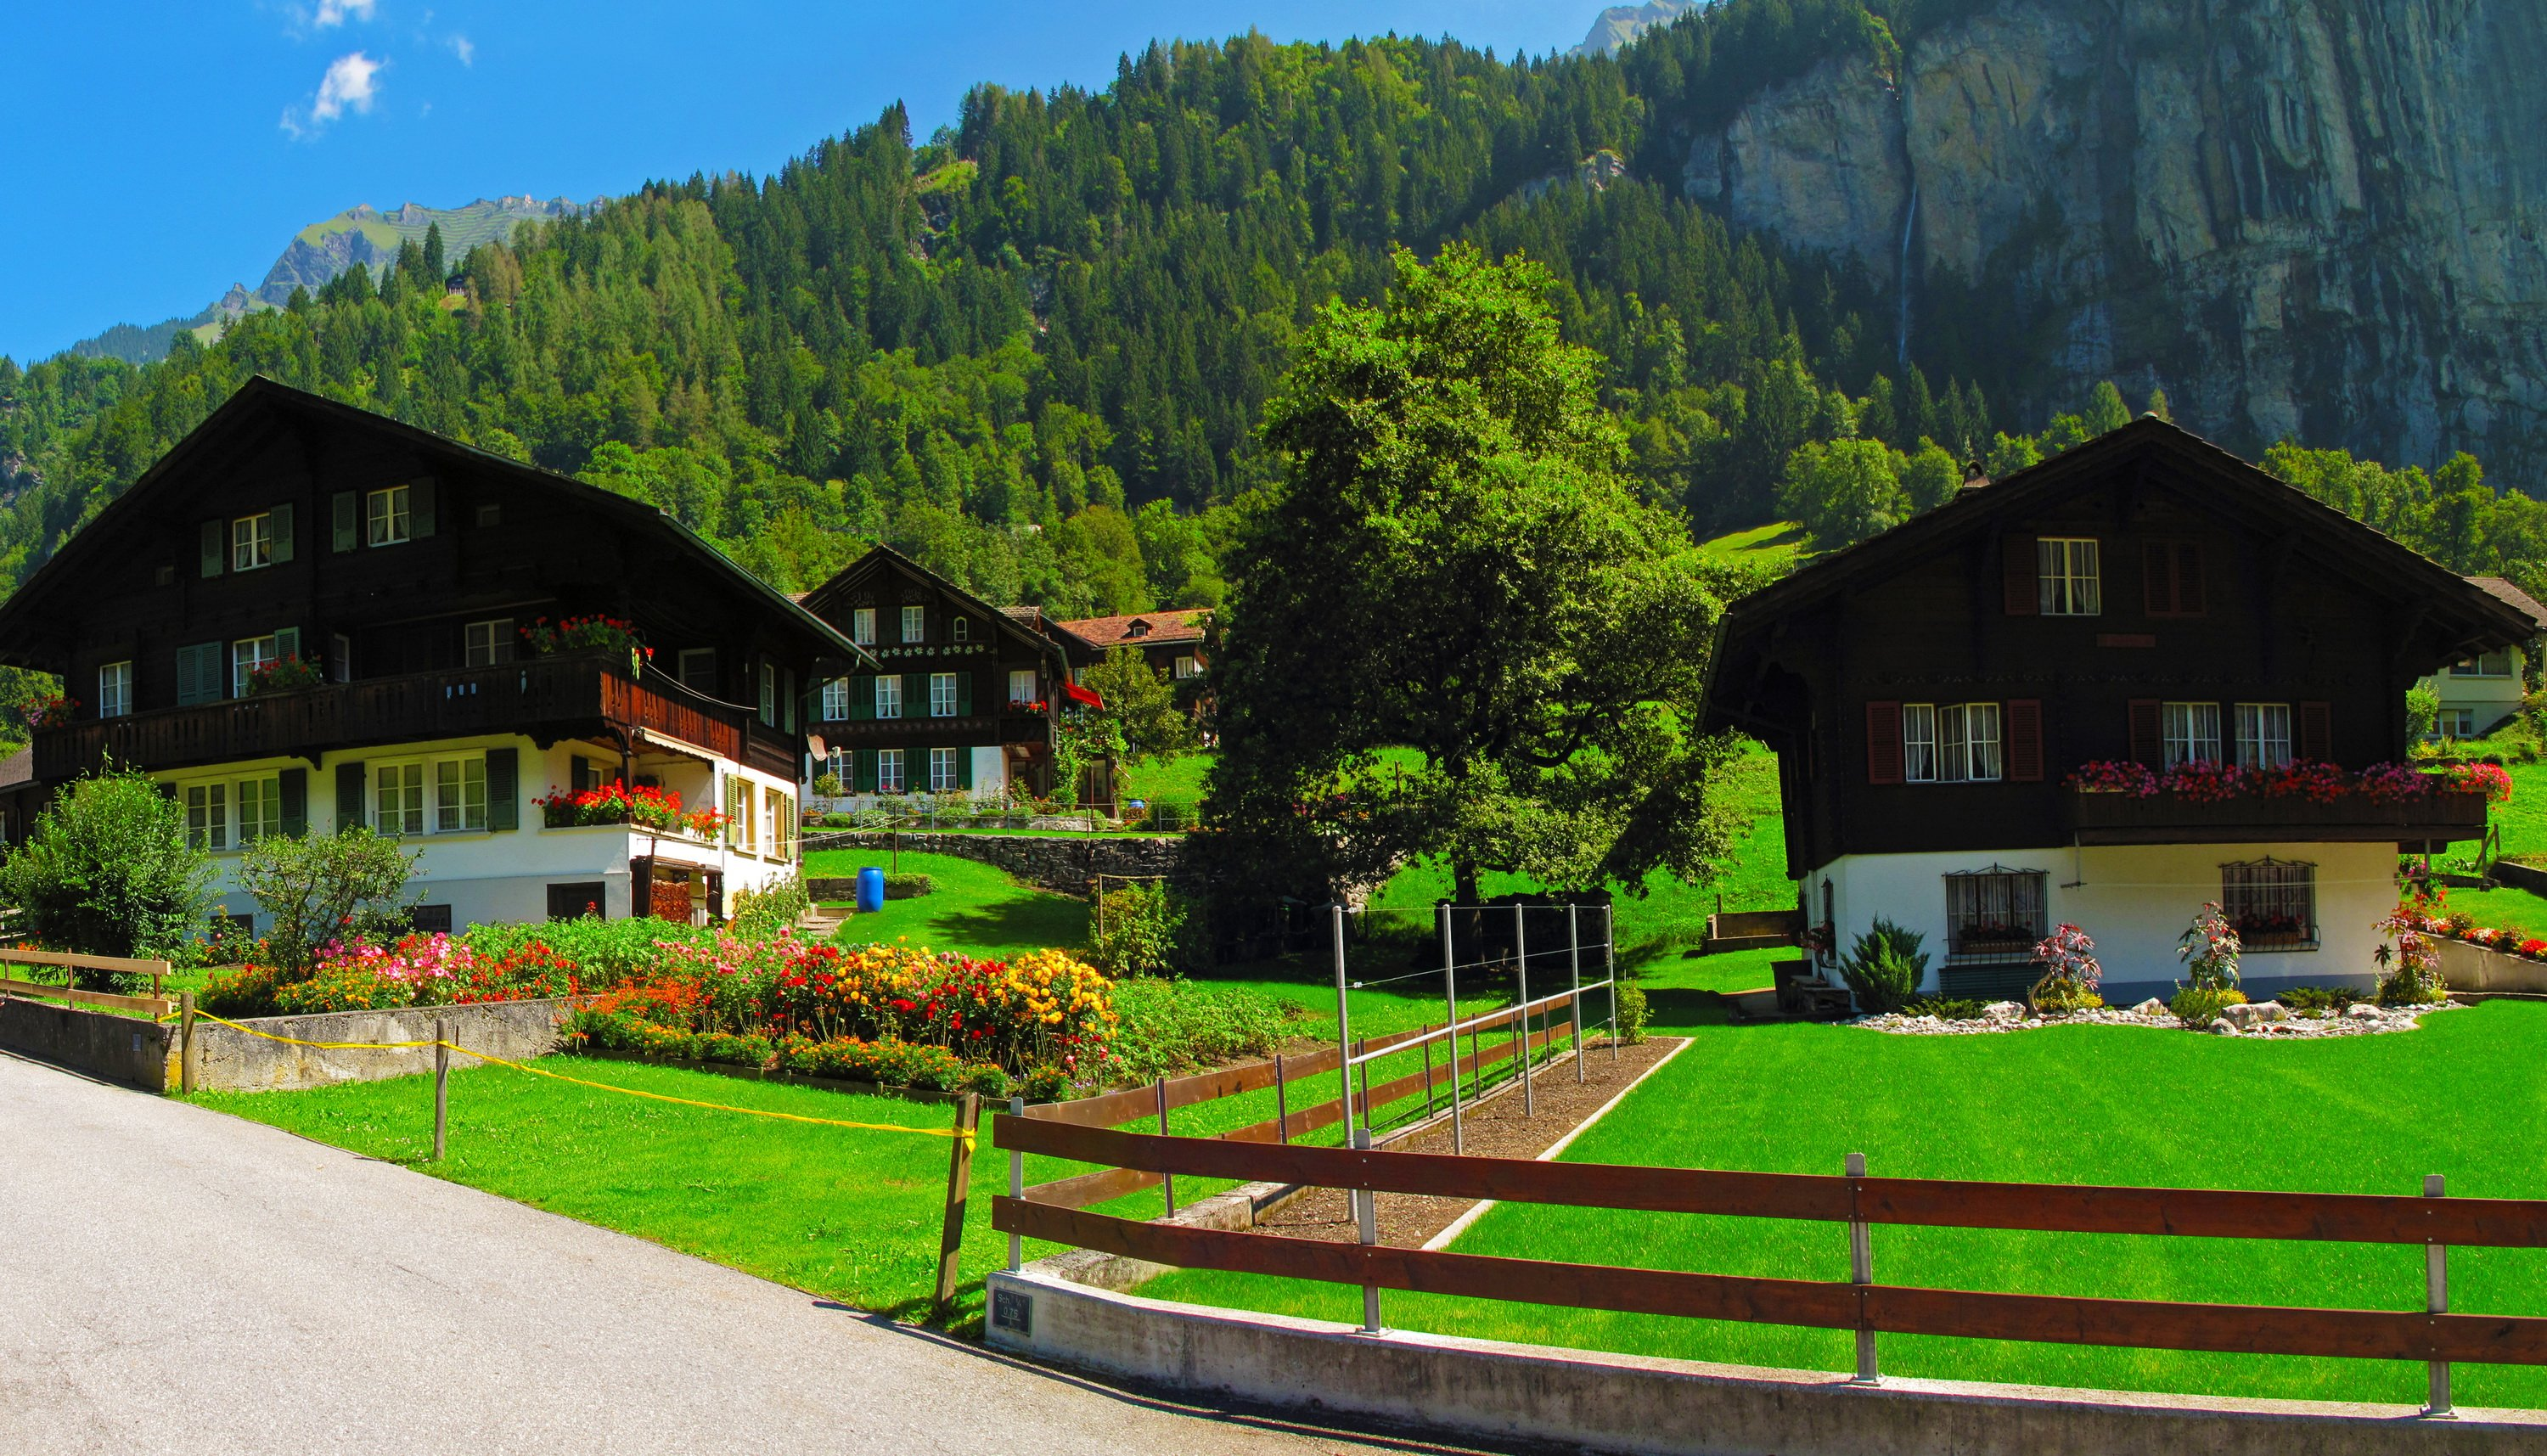 Switzerland Houses Lauterbrunnen Lawn Fence Cities